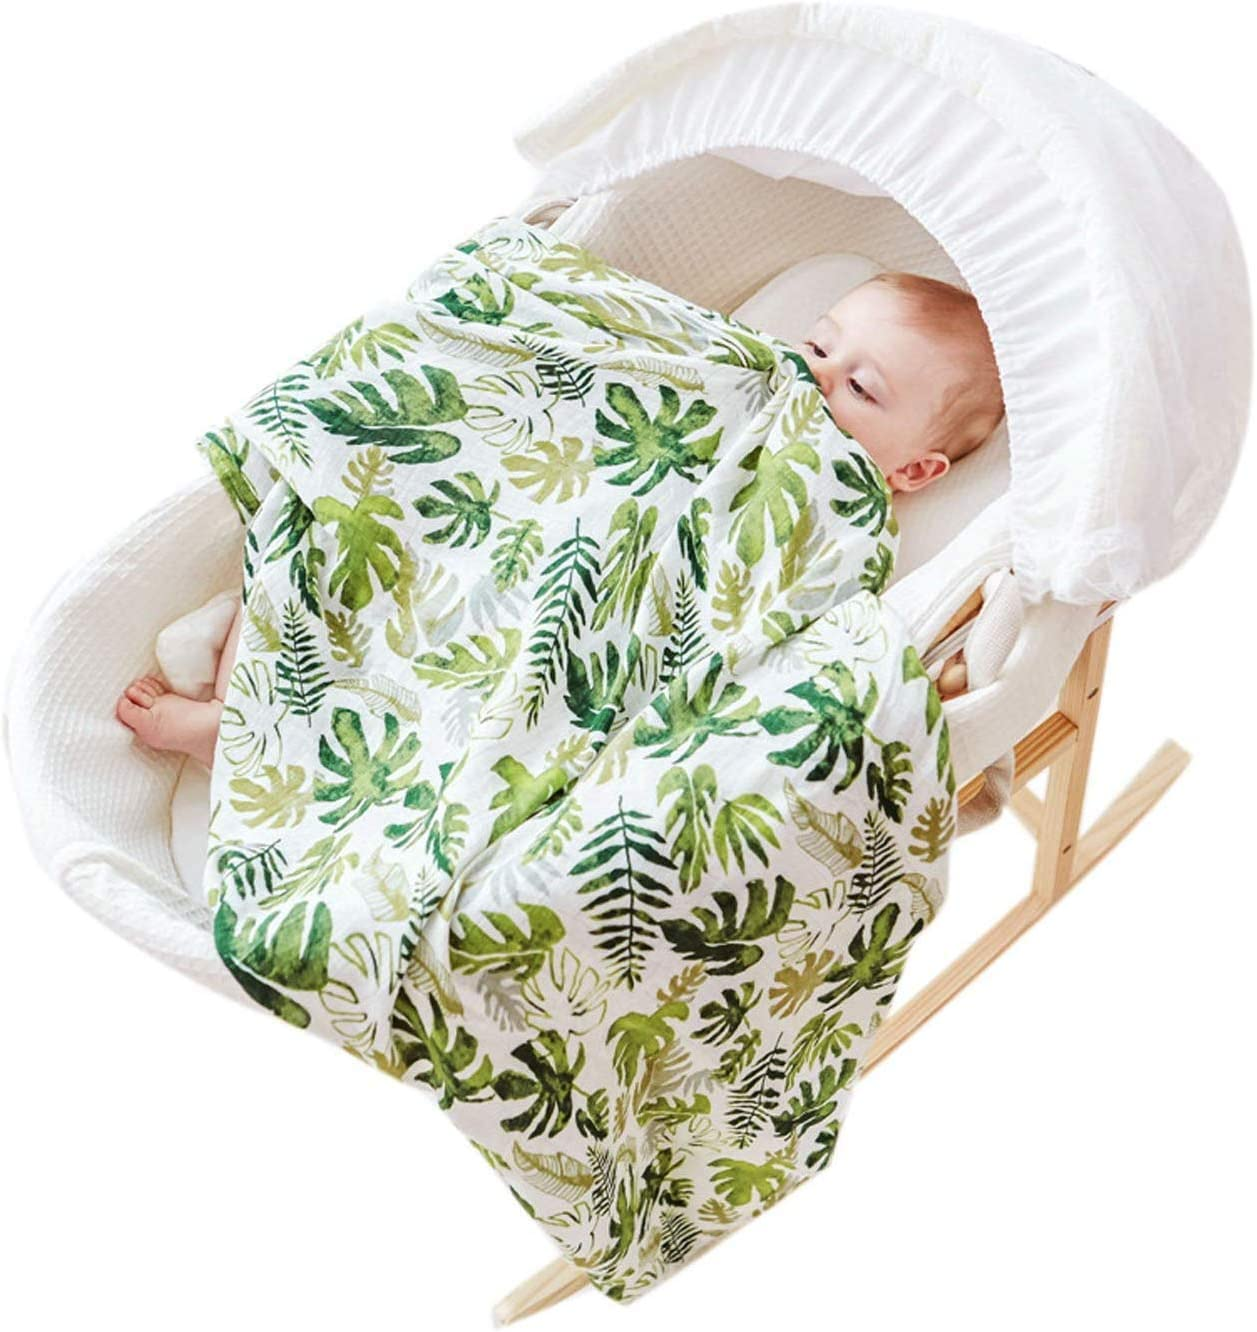 Baby blanket with soft cotton muslin green leaf design to wrap bedding RENS bath towel